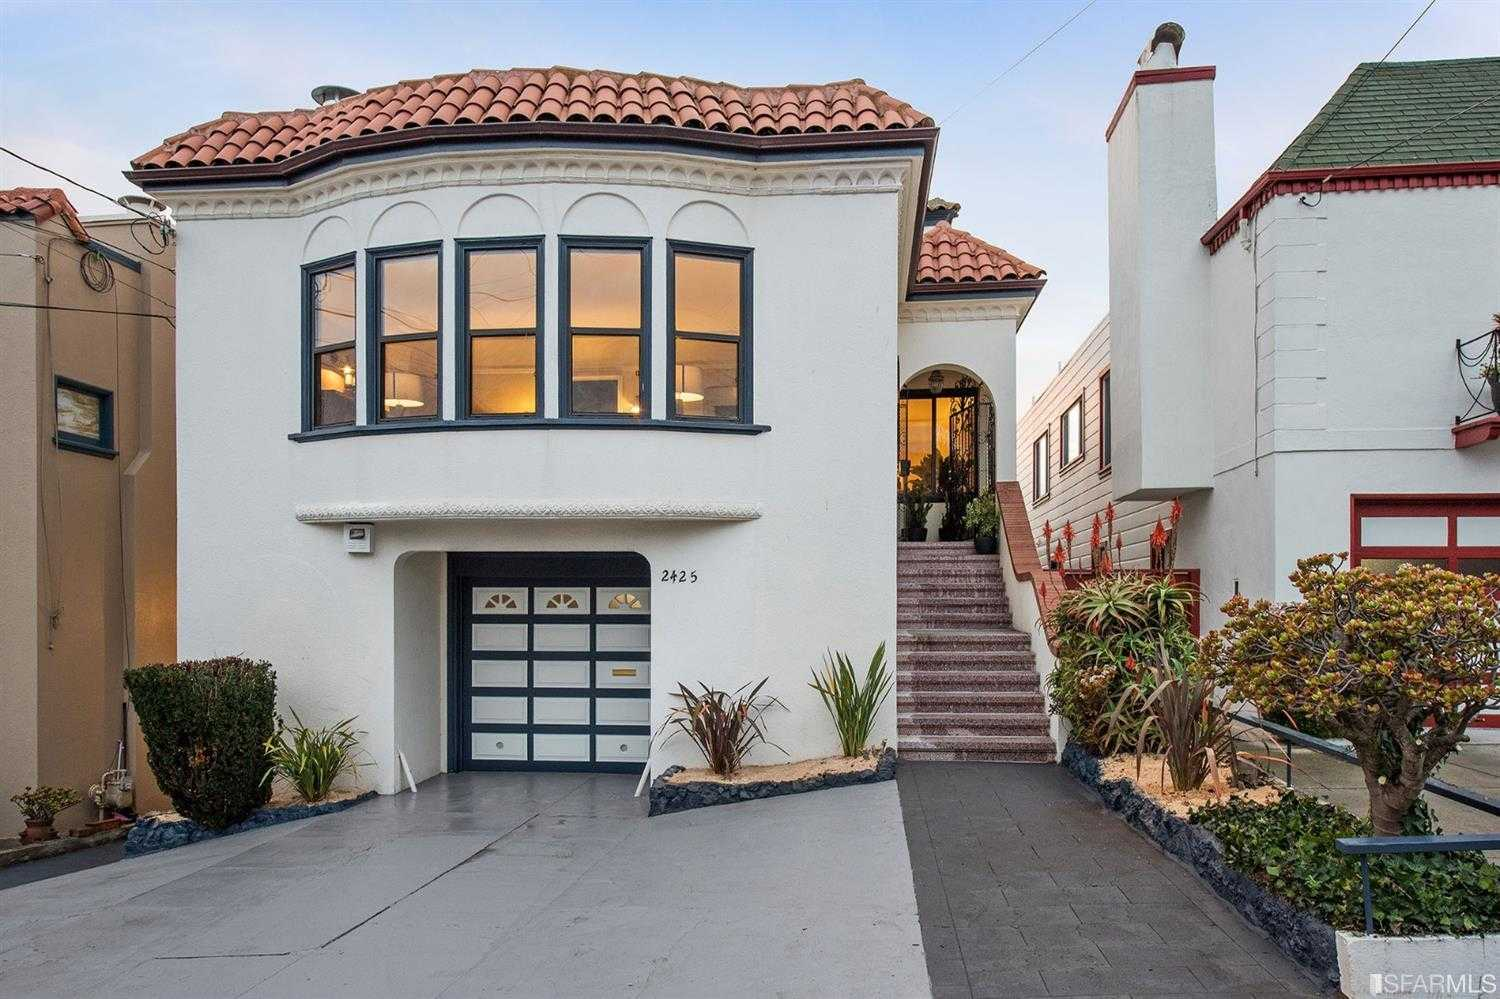 2425 21st Ave San Francisco, CA 94116